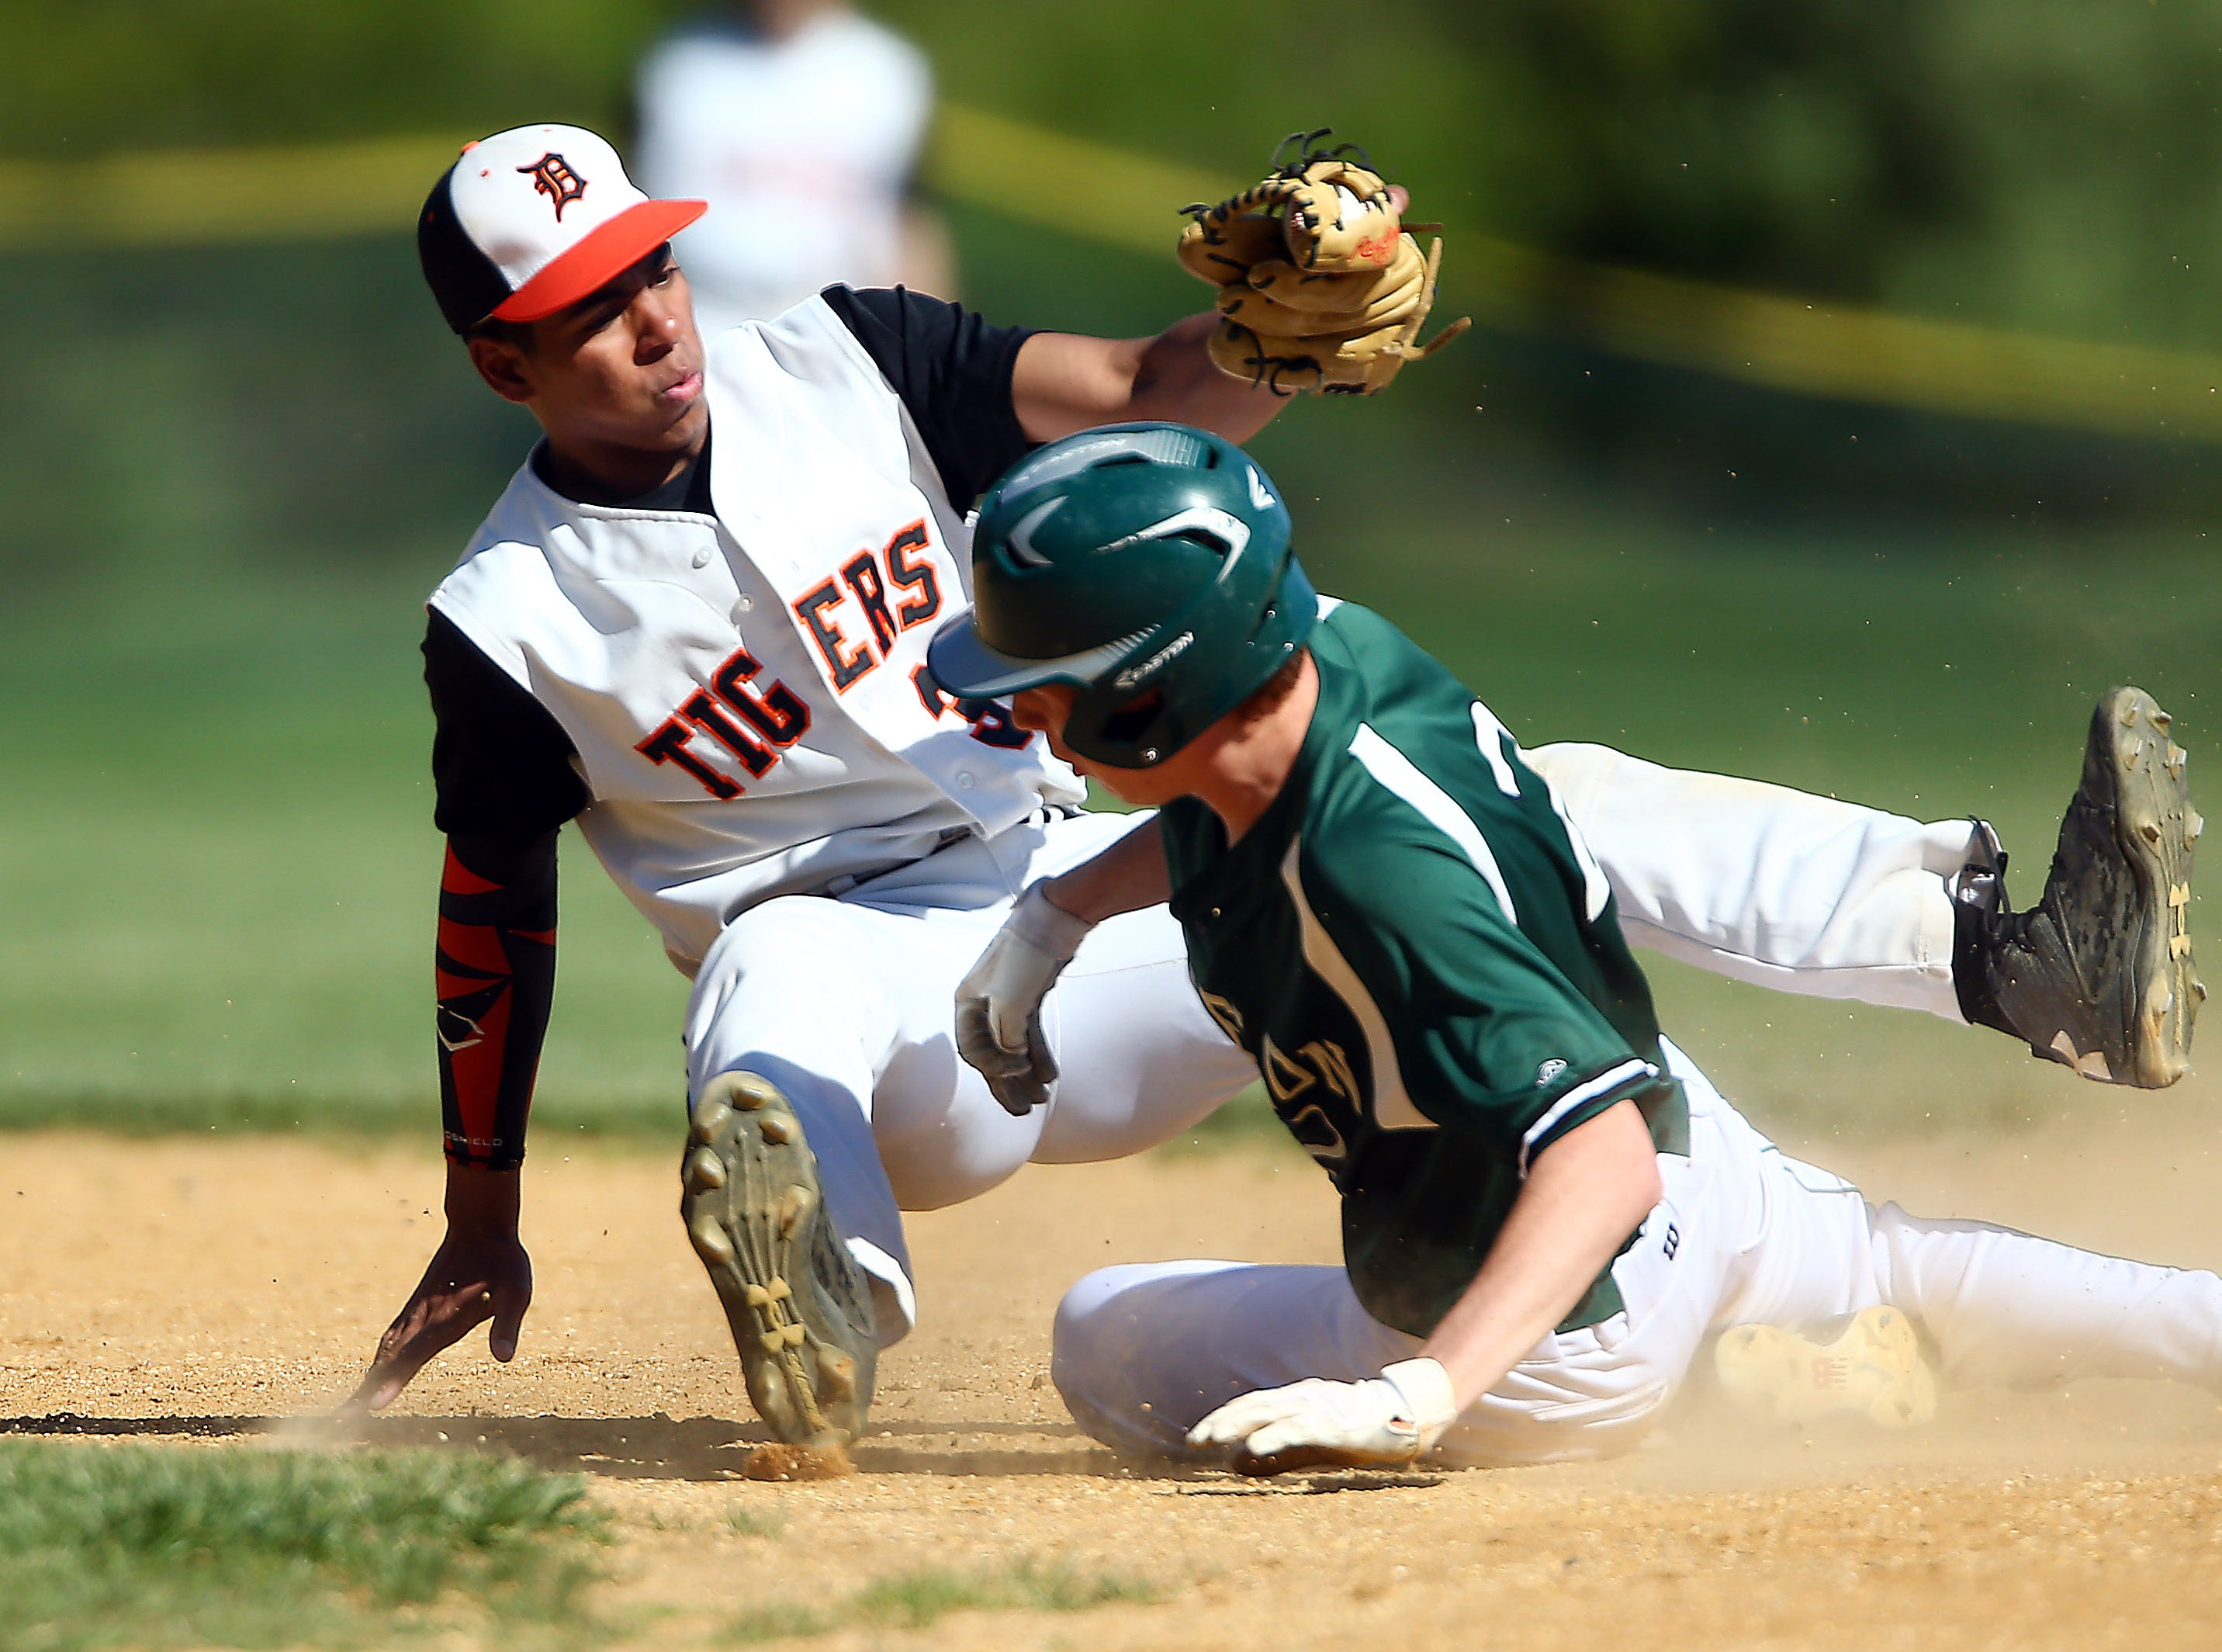 Dover shortstop Josh Blackwell tags out Kinnelon's Ben Stickle on a first inning steal. May 11, 2018. Dover, NJ